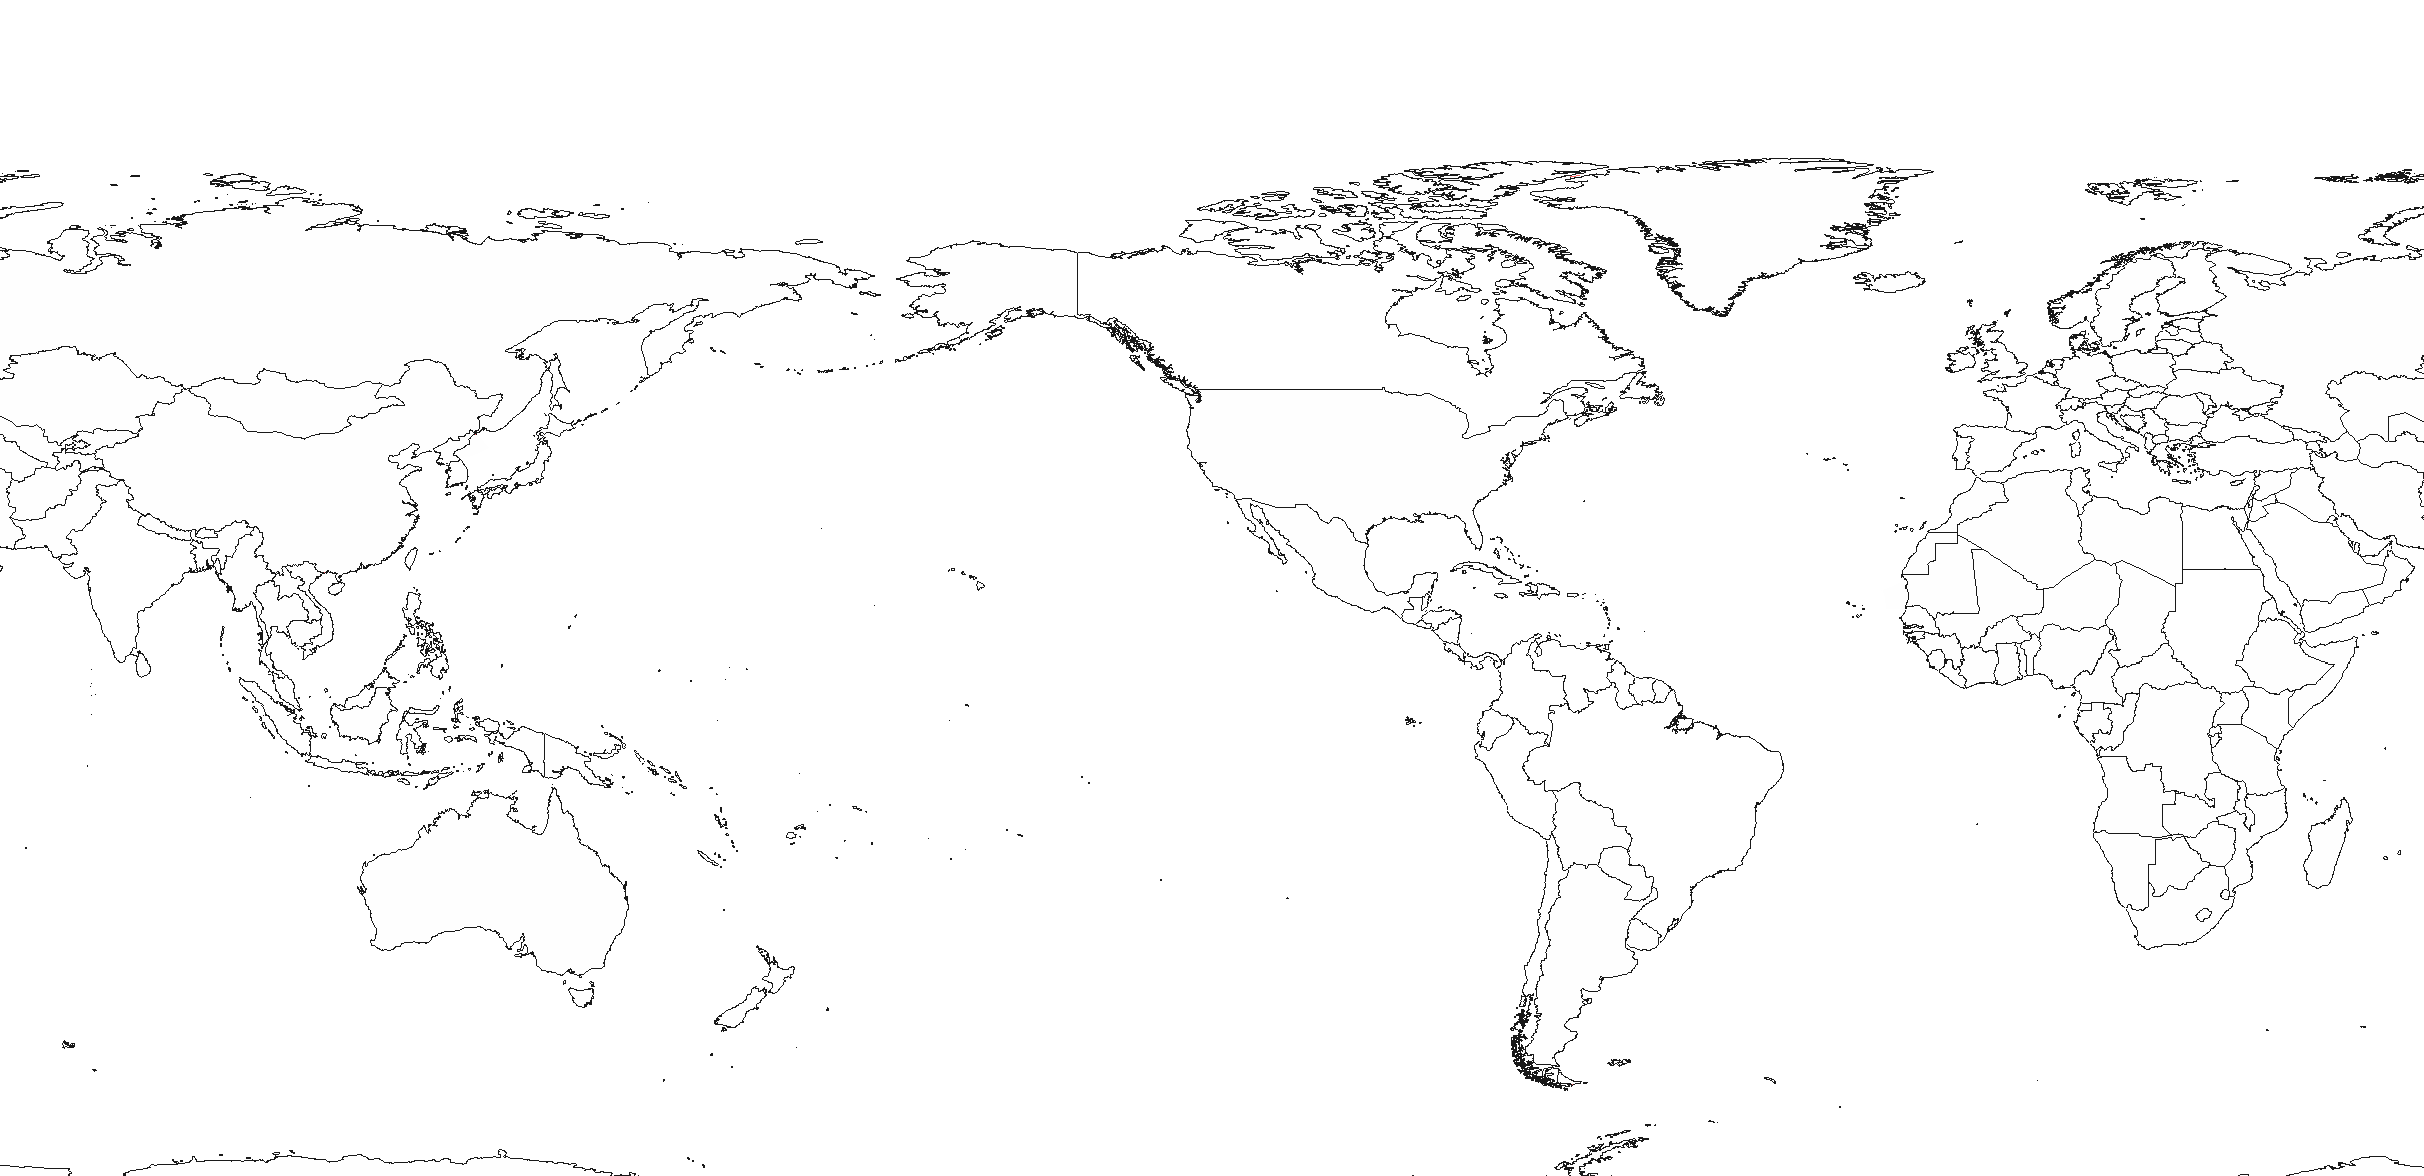 Filewhite world mapamericas centered blankg wikimedia commons filewhite world mapamericas centered blankg gumiabroncs Image collections